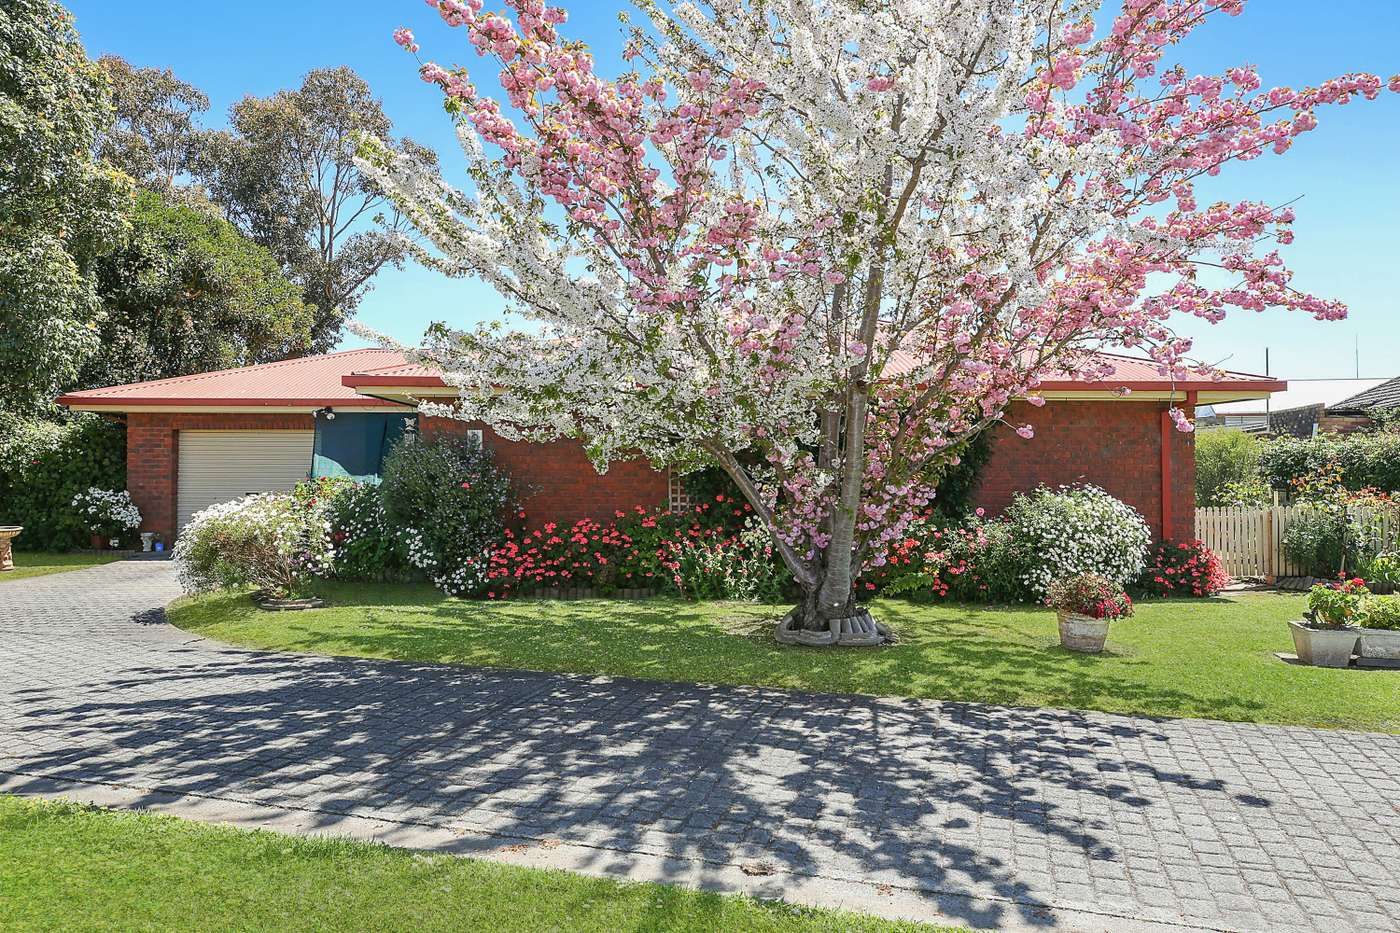 Main view of Homely unit listing, 2/11 Longmore Street, Camperdown, VIC 3260